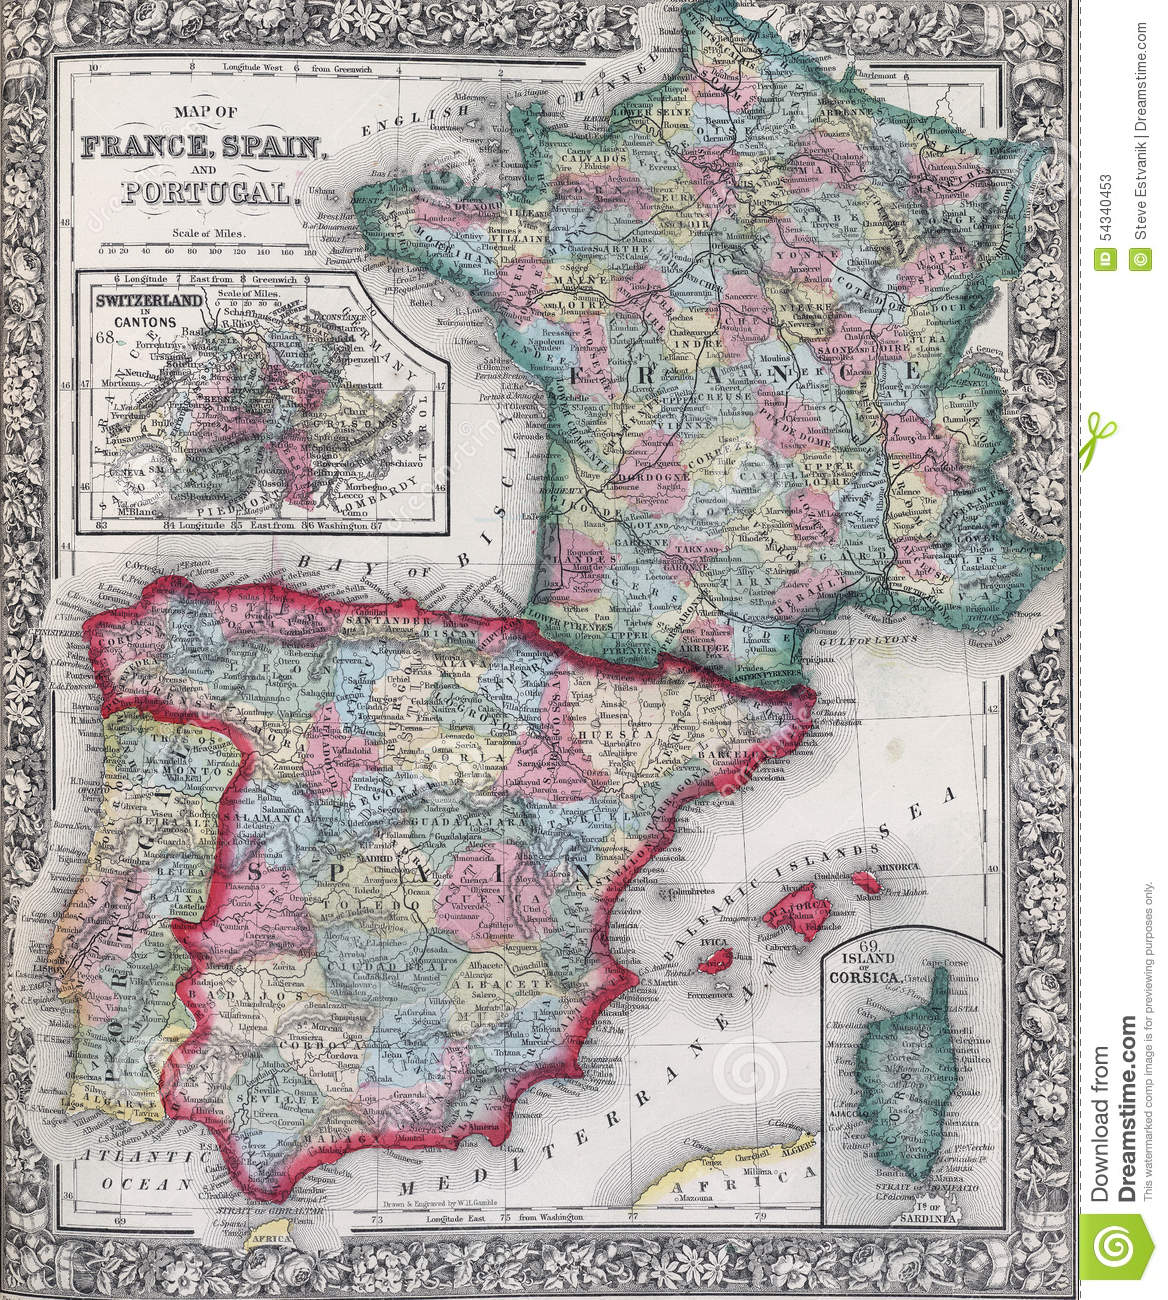 Map Of Spain Portugal And France.Antique Map Of Spain France And Portugal Stock Image Image Of